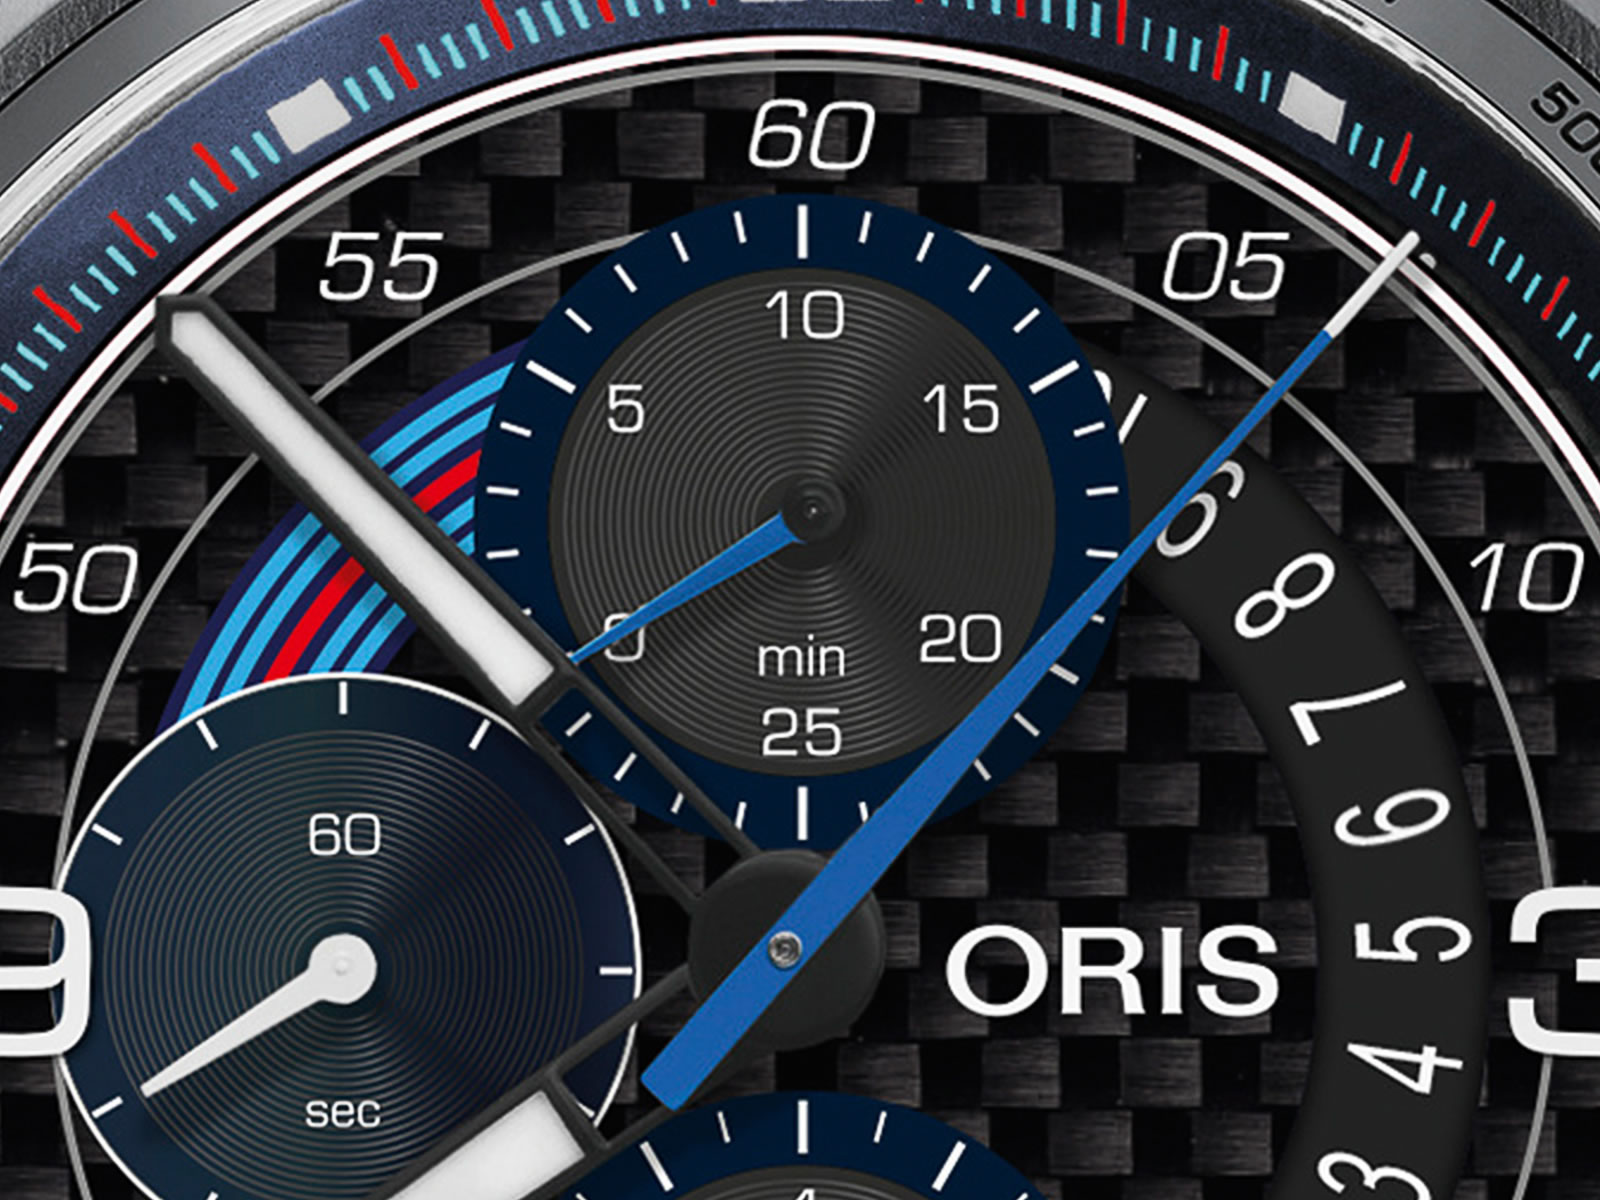 01-774-7717-4184-oris-martini-racing-limited-edition-chronograph-2018-4-.jpg